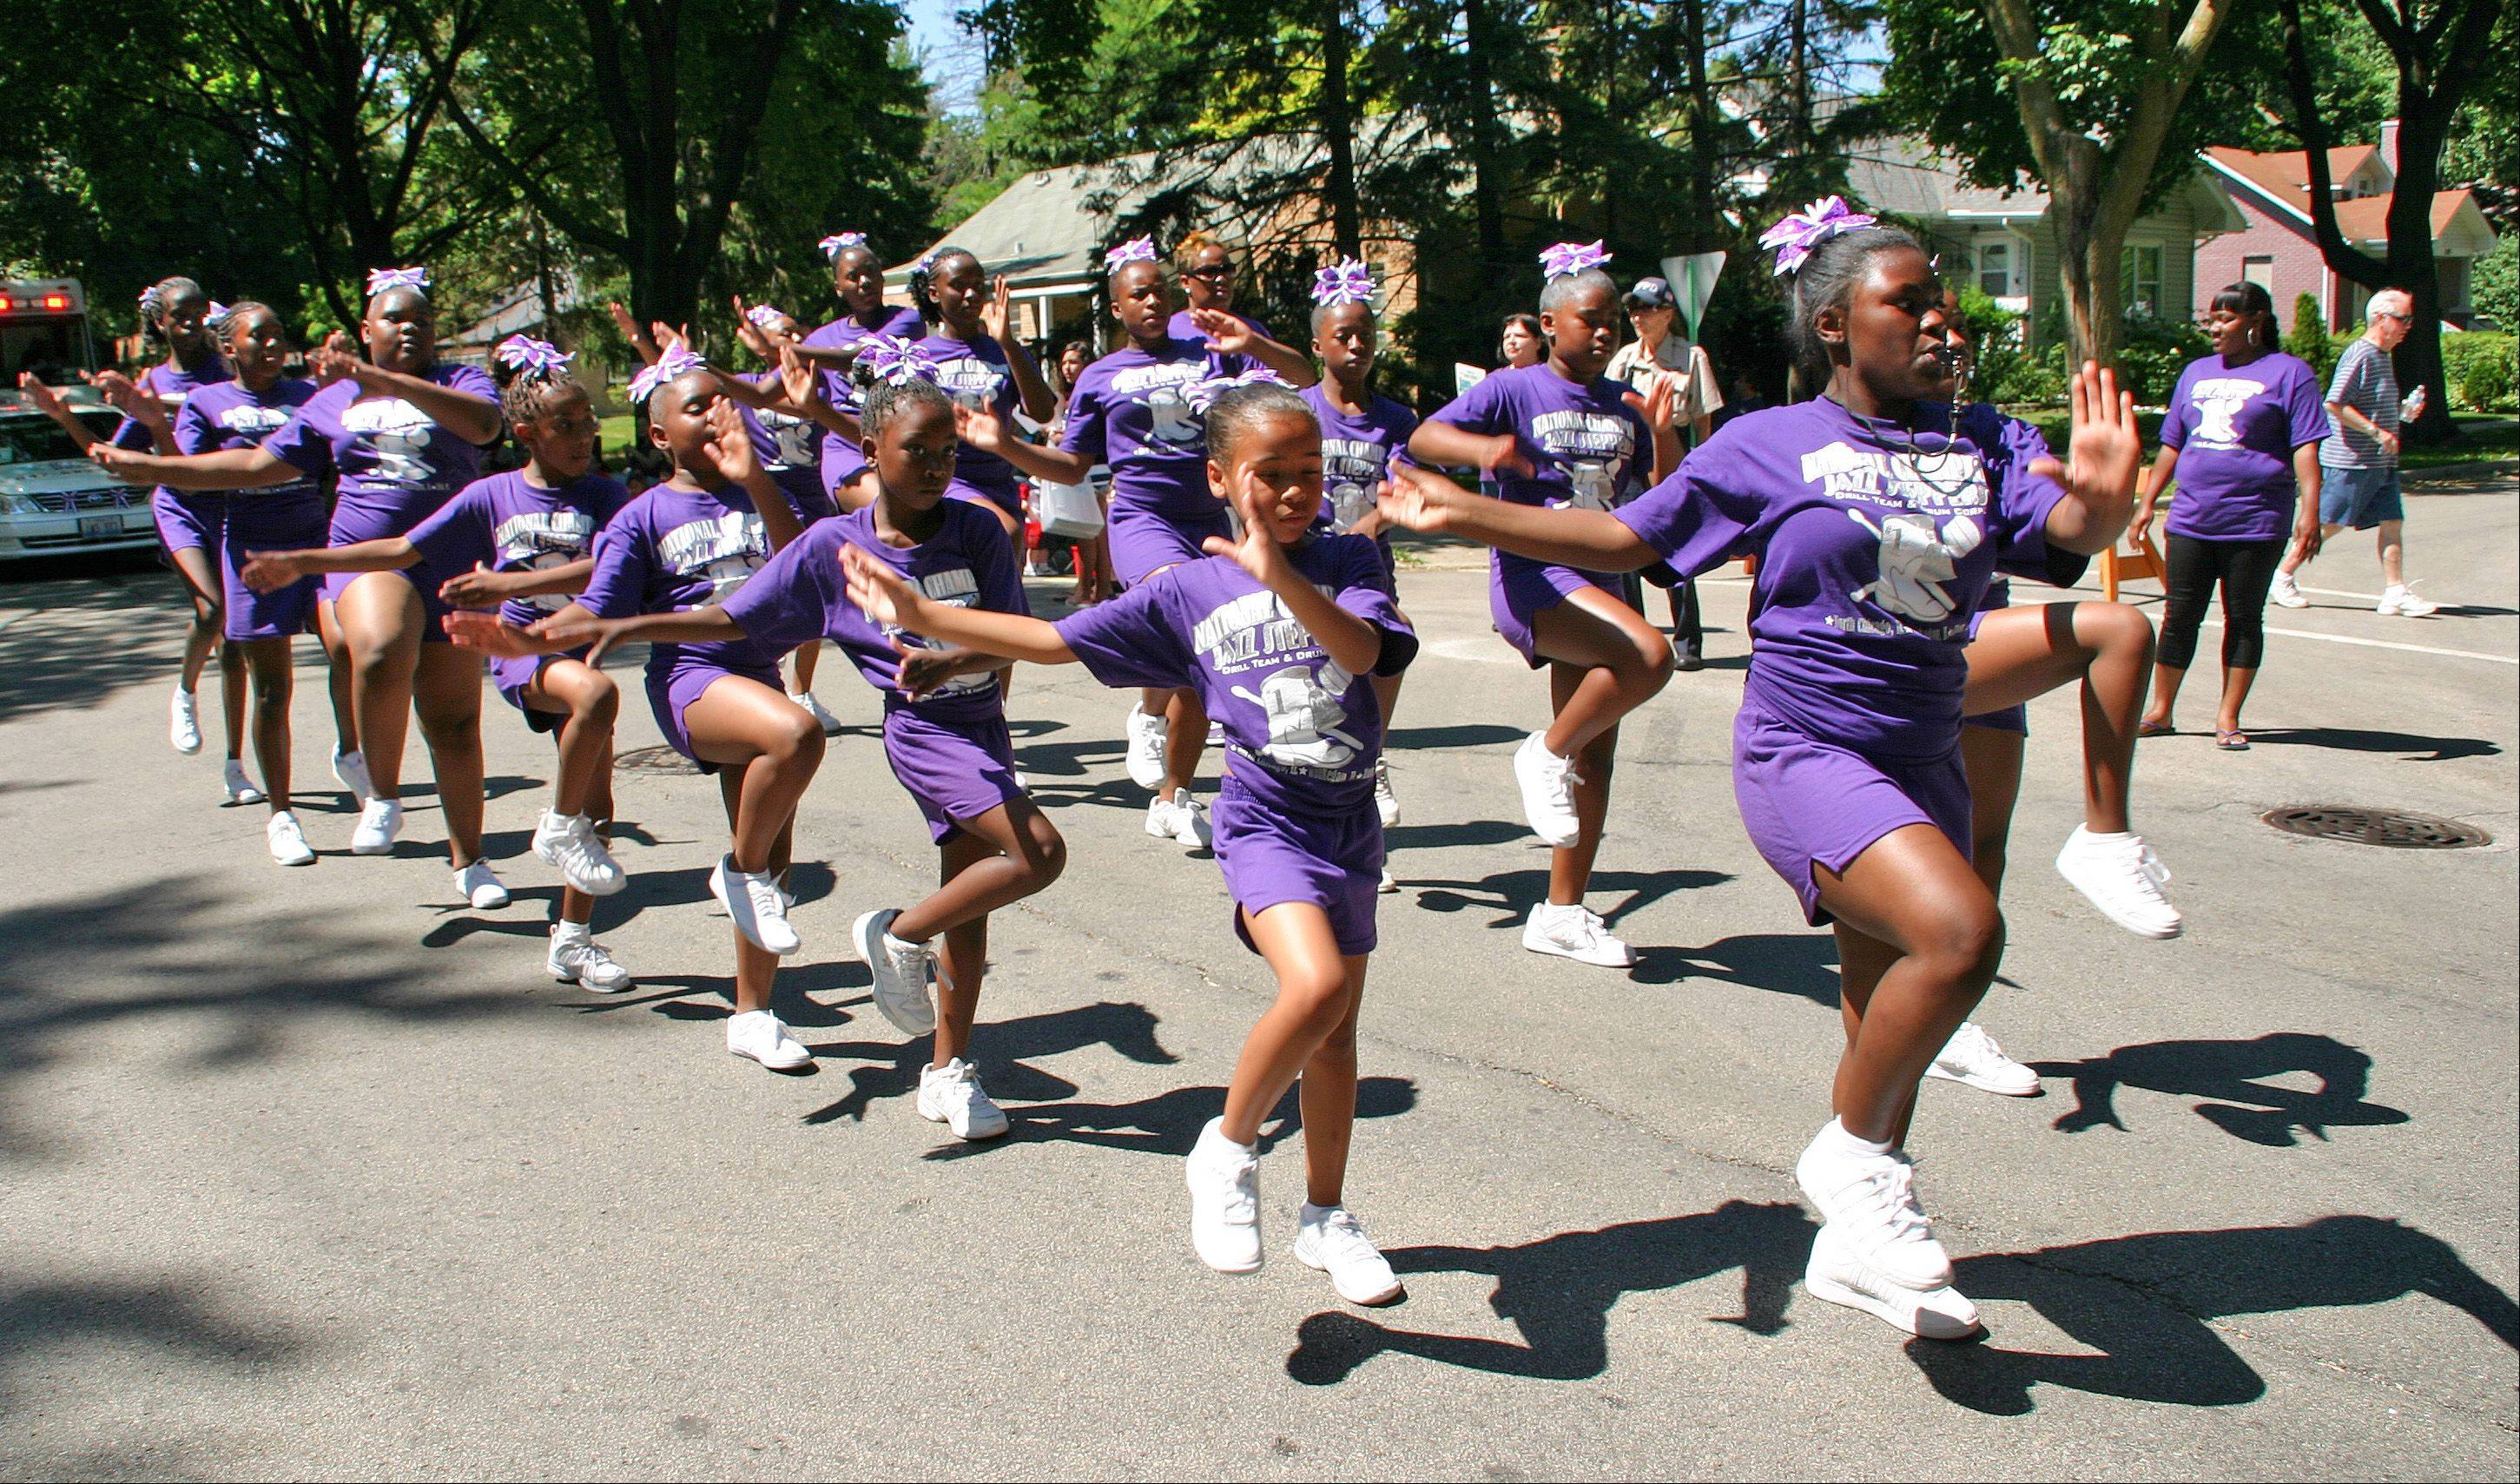 The National Champions Jazz Steppers Drill Team and Drum Corps perform for the crowds in the 2011 Independence Day Parade in Des Plaines.